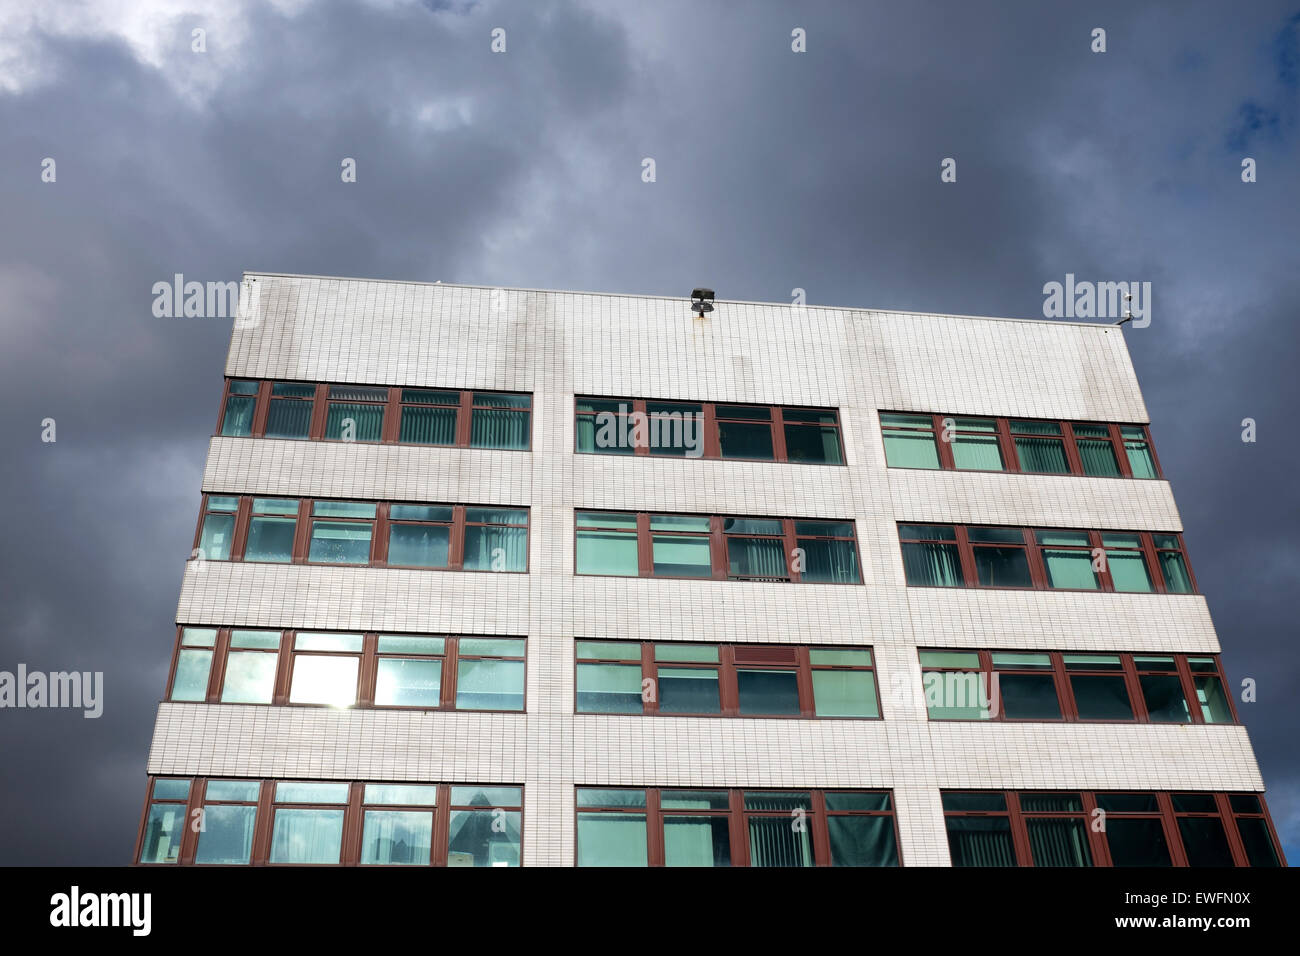 Dark Sky Stormy 1960s Architecture Brutal Depressing - Stock Image